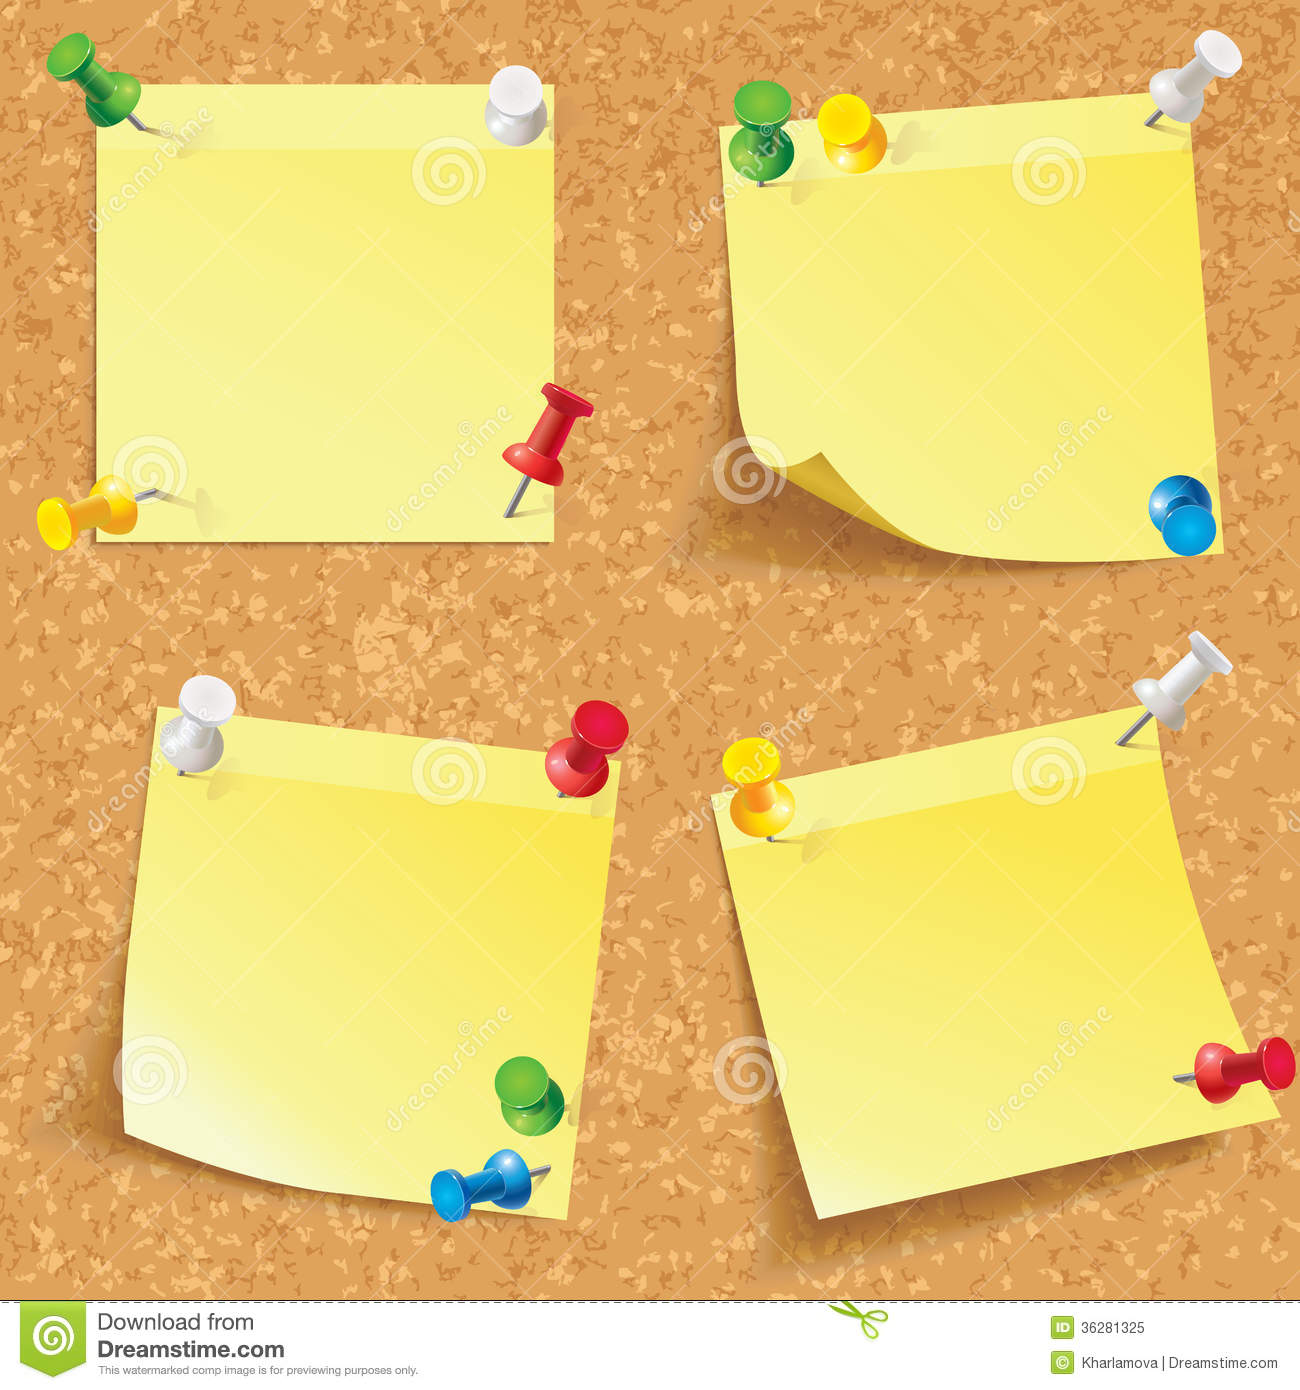 corkboard map with Royalty Free Stock Photo Yellow Stick Note Blank Notes Pinned Corkboard Ready Your Text Front View Vector Illustration Set Image36281325 on 15 Fun Features For Family Rooms further 32643829251 besides Stock Photos Pinboard Notes Image8015513 furthermore Royalty Free Stock Photo Tower Money Packs Image23120215 besides Thumbtack.